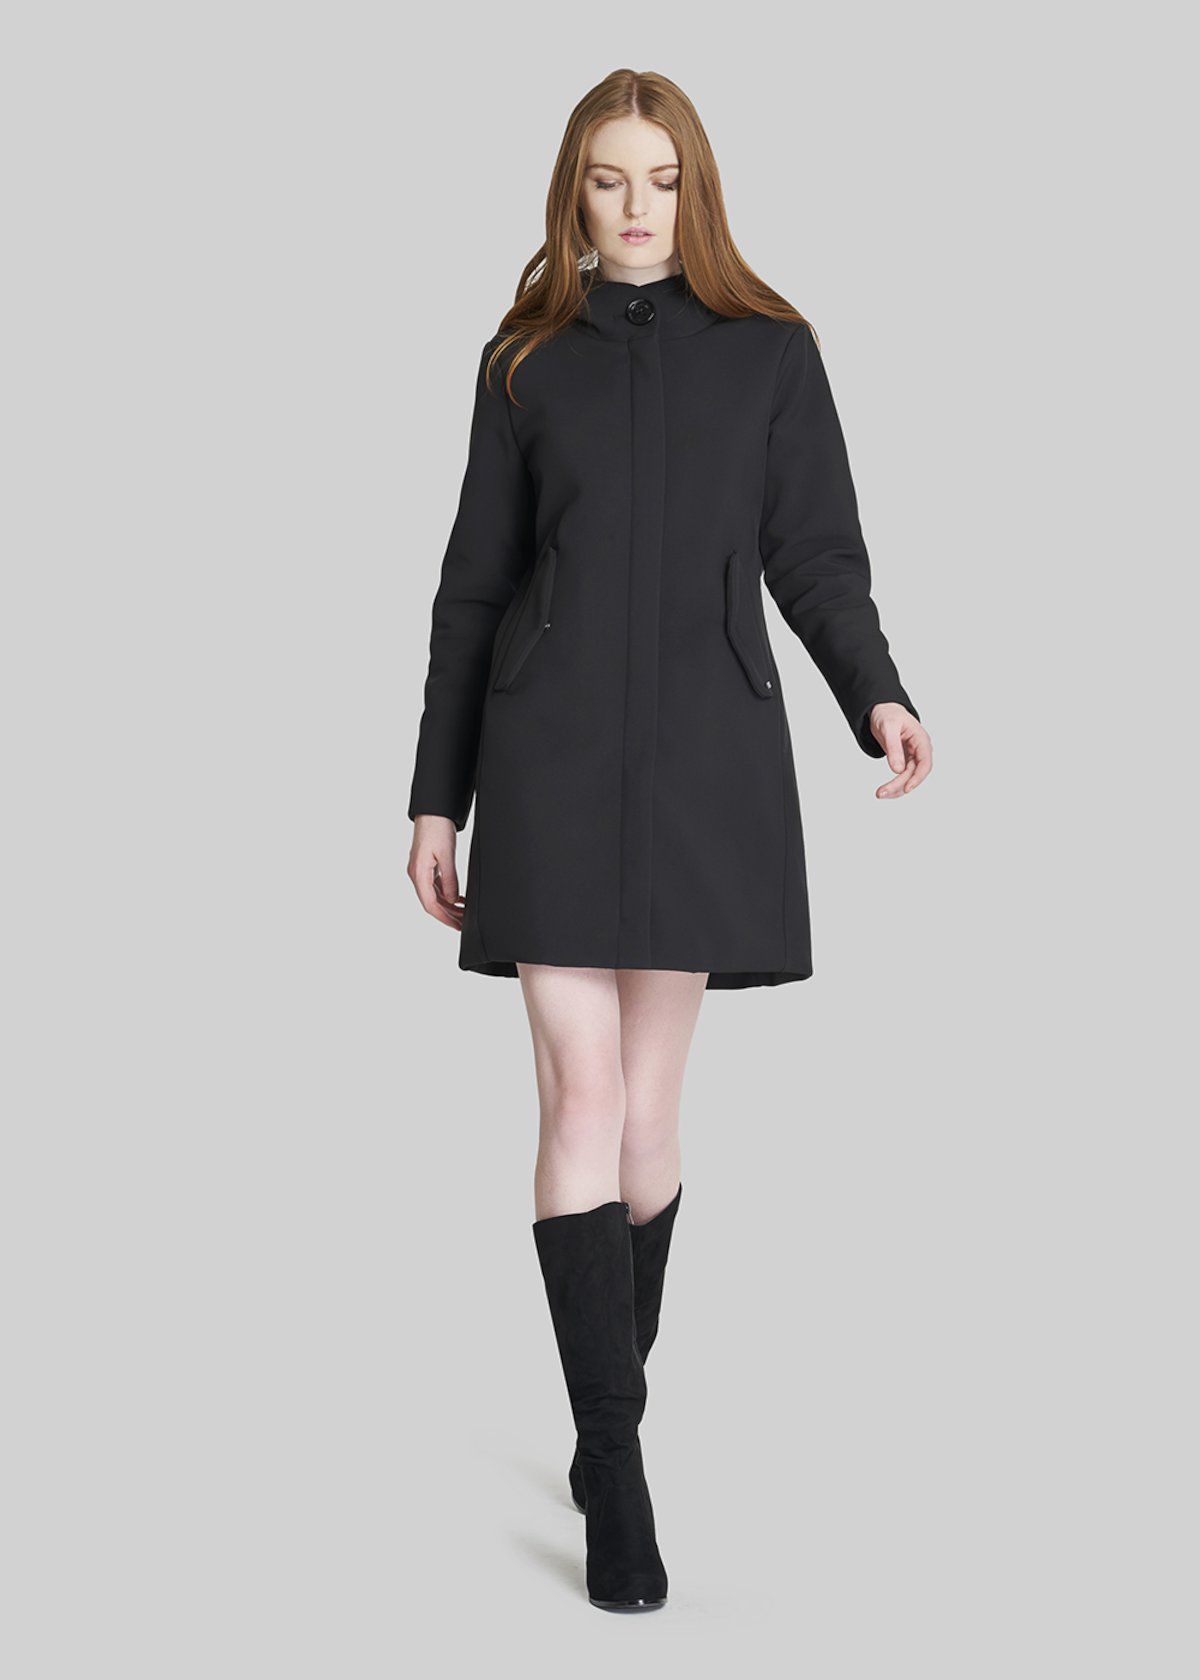 Cristofer coat with hood and central zip - Black